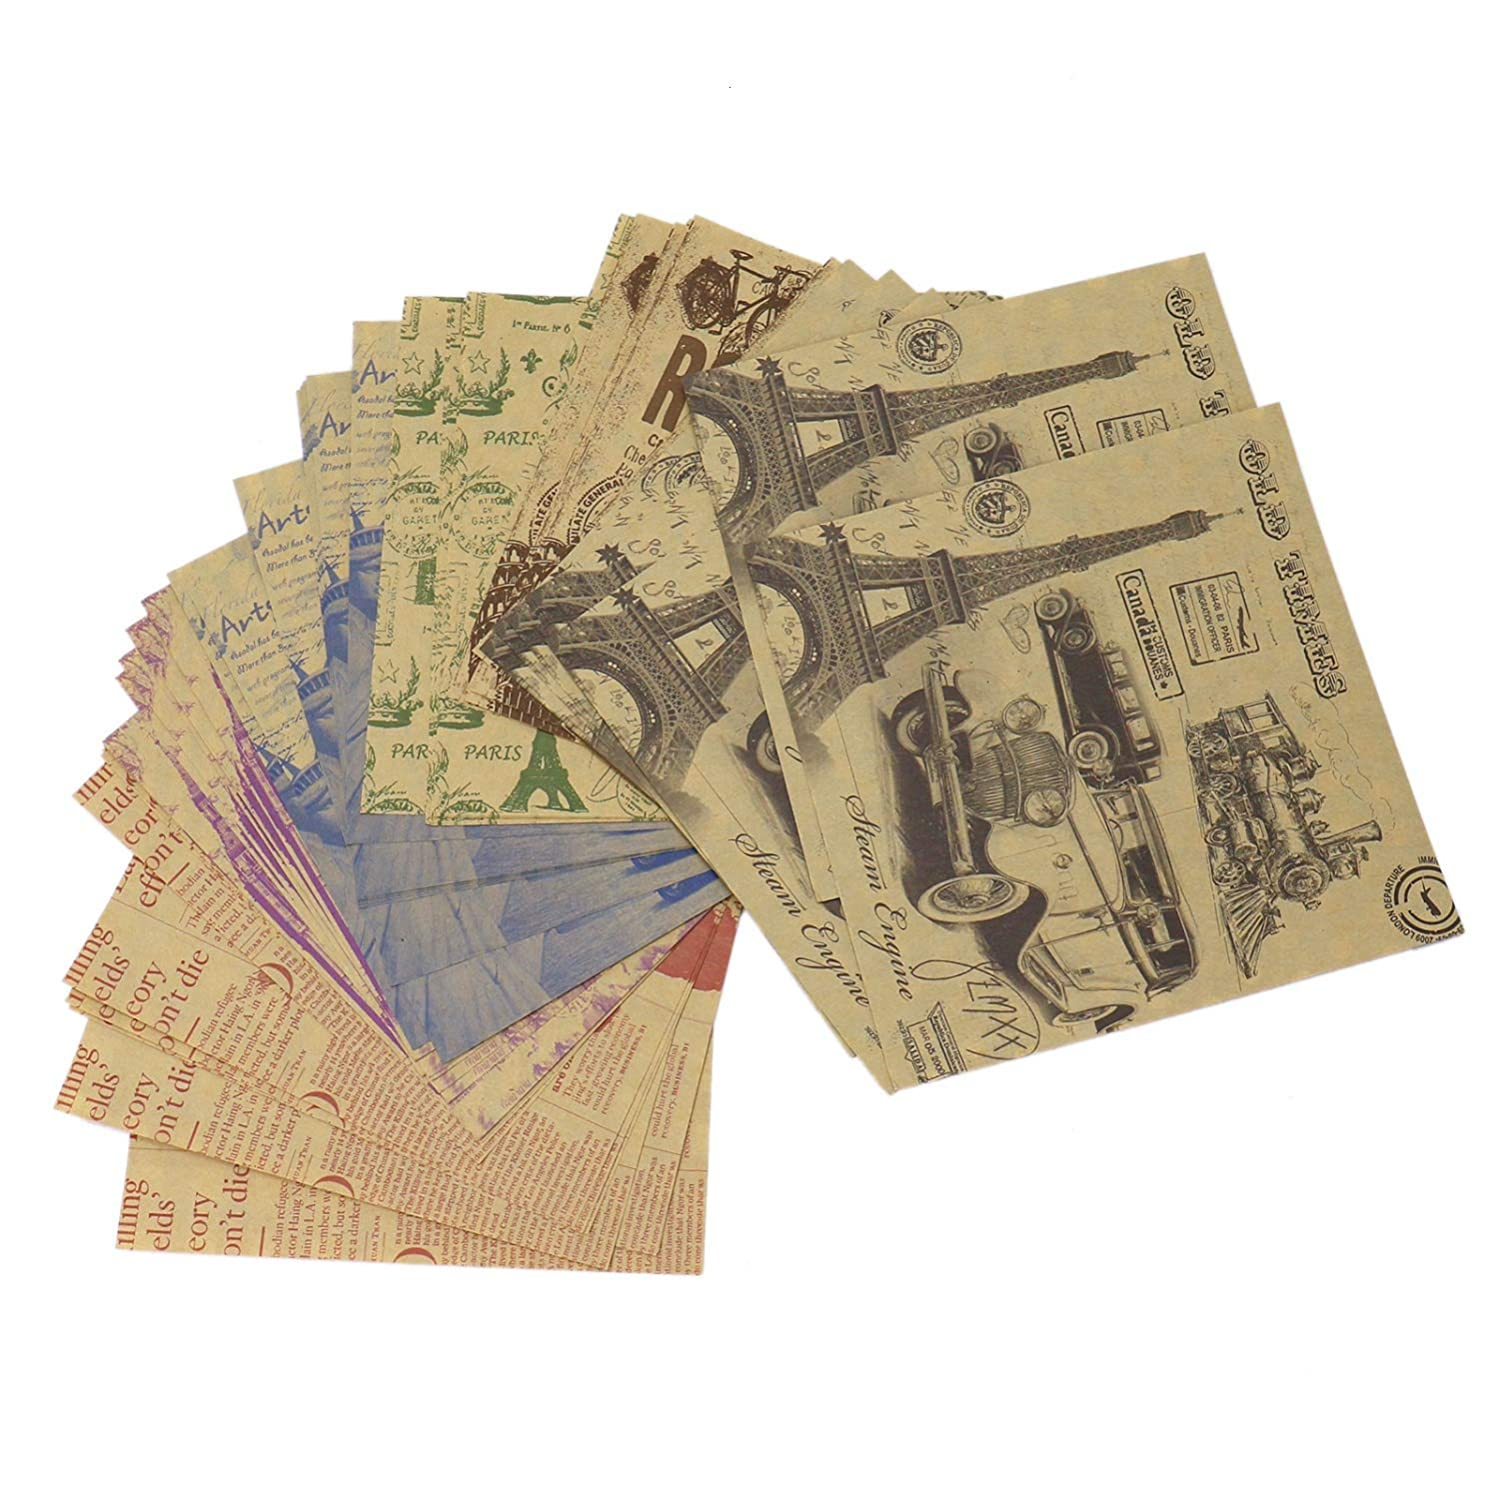 Monrocco 120 Sheets Vintage Pattern Origami Paper,6'' Inches Double Sided Colors Origami Paper for Arts and Crafts